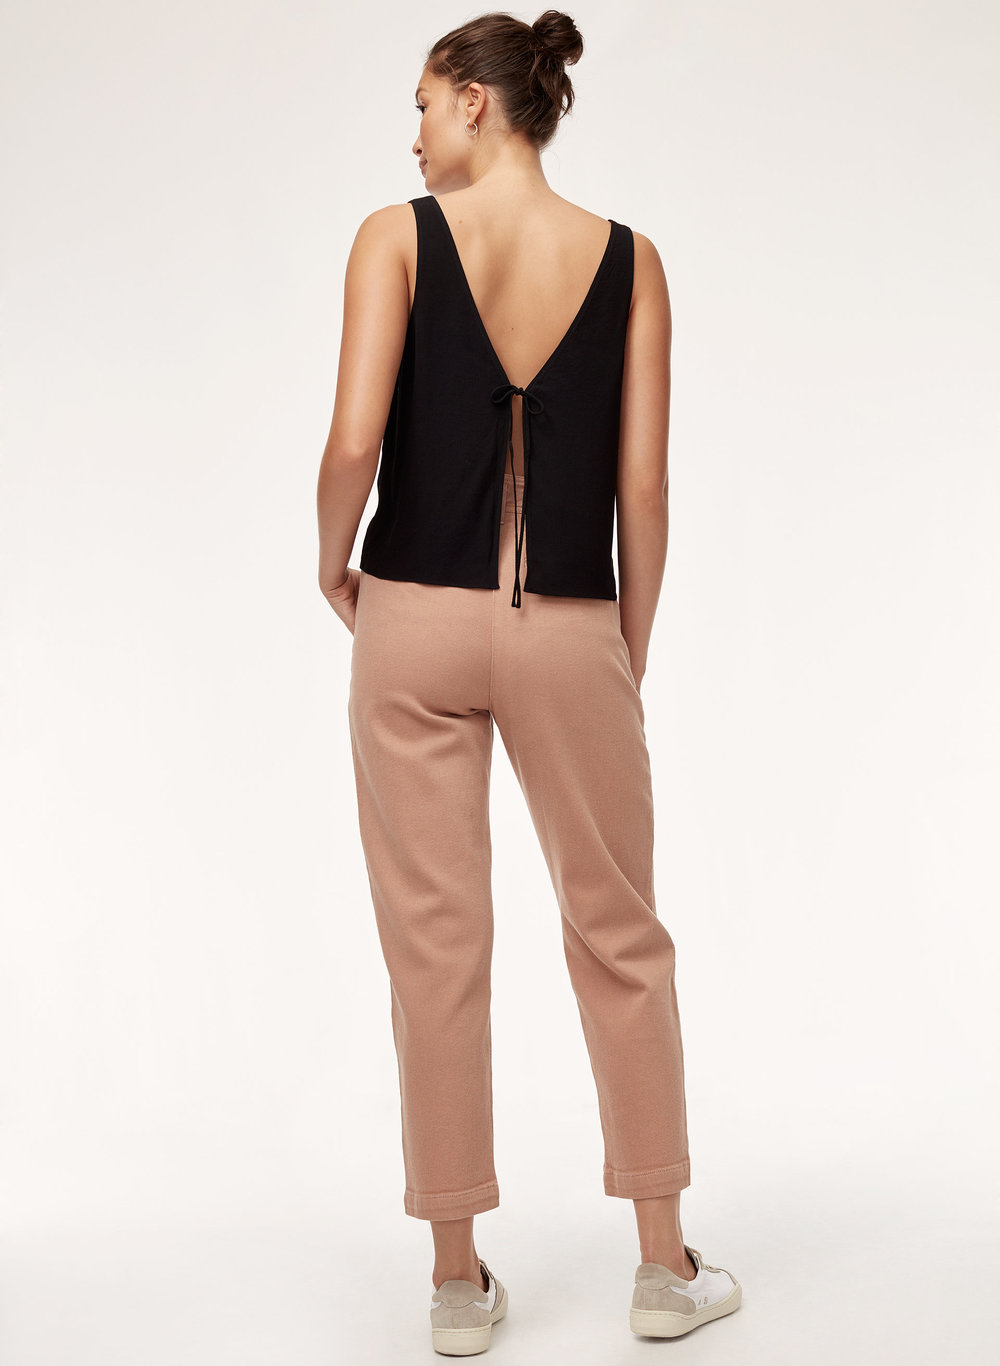 Wilfred Free    Kempner Blouse. Available in multiple colors. Aritzia. Was: $55 Now: $45.